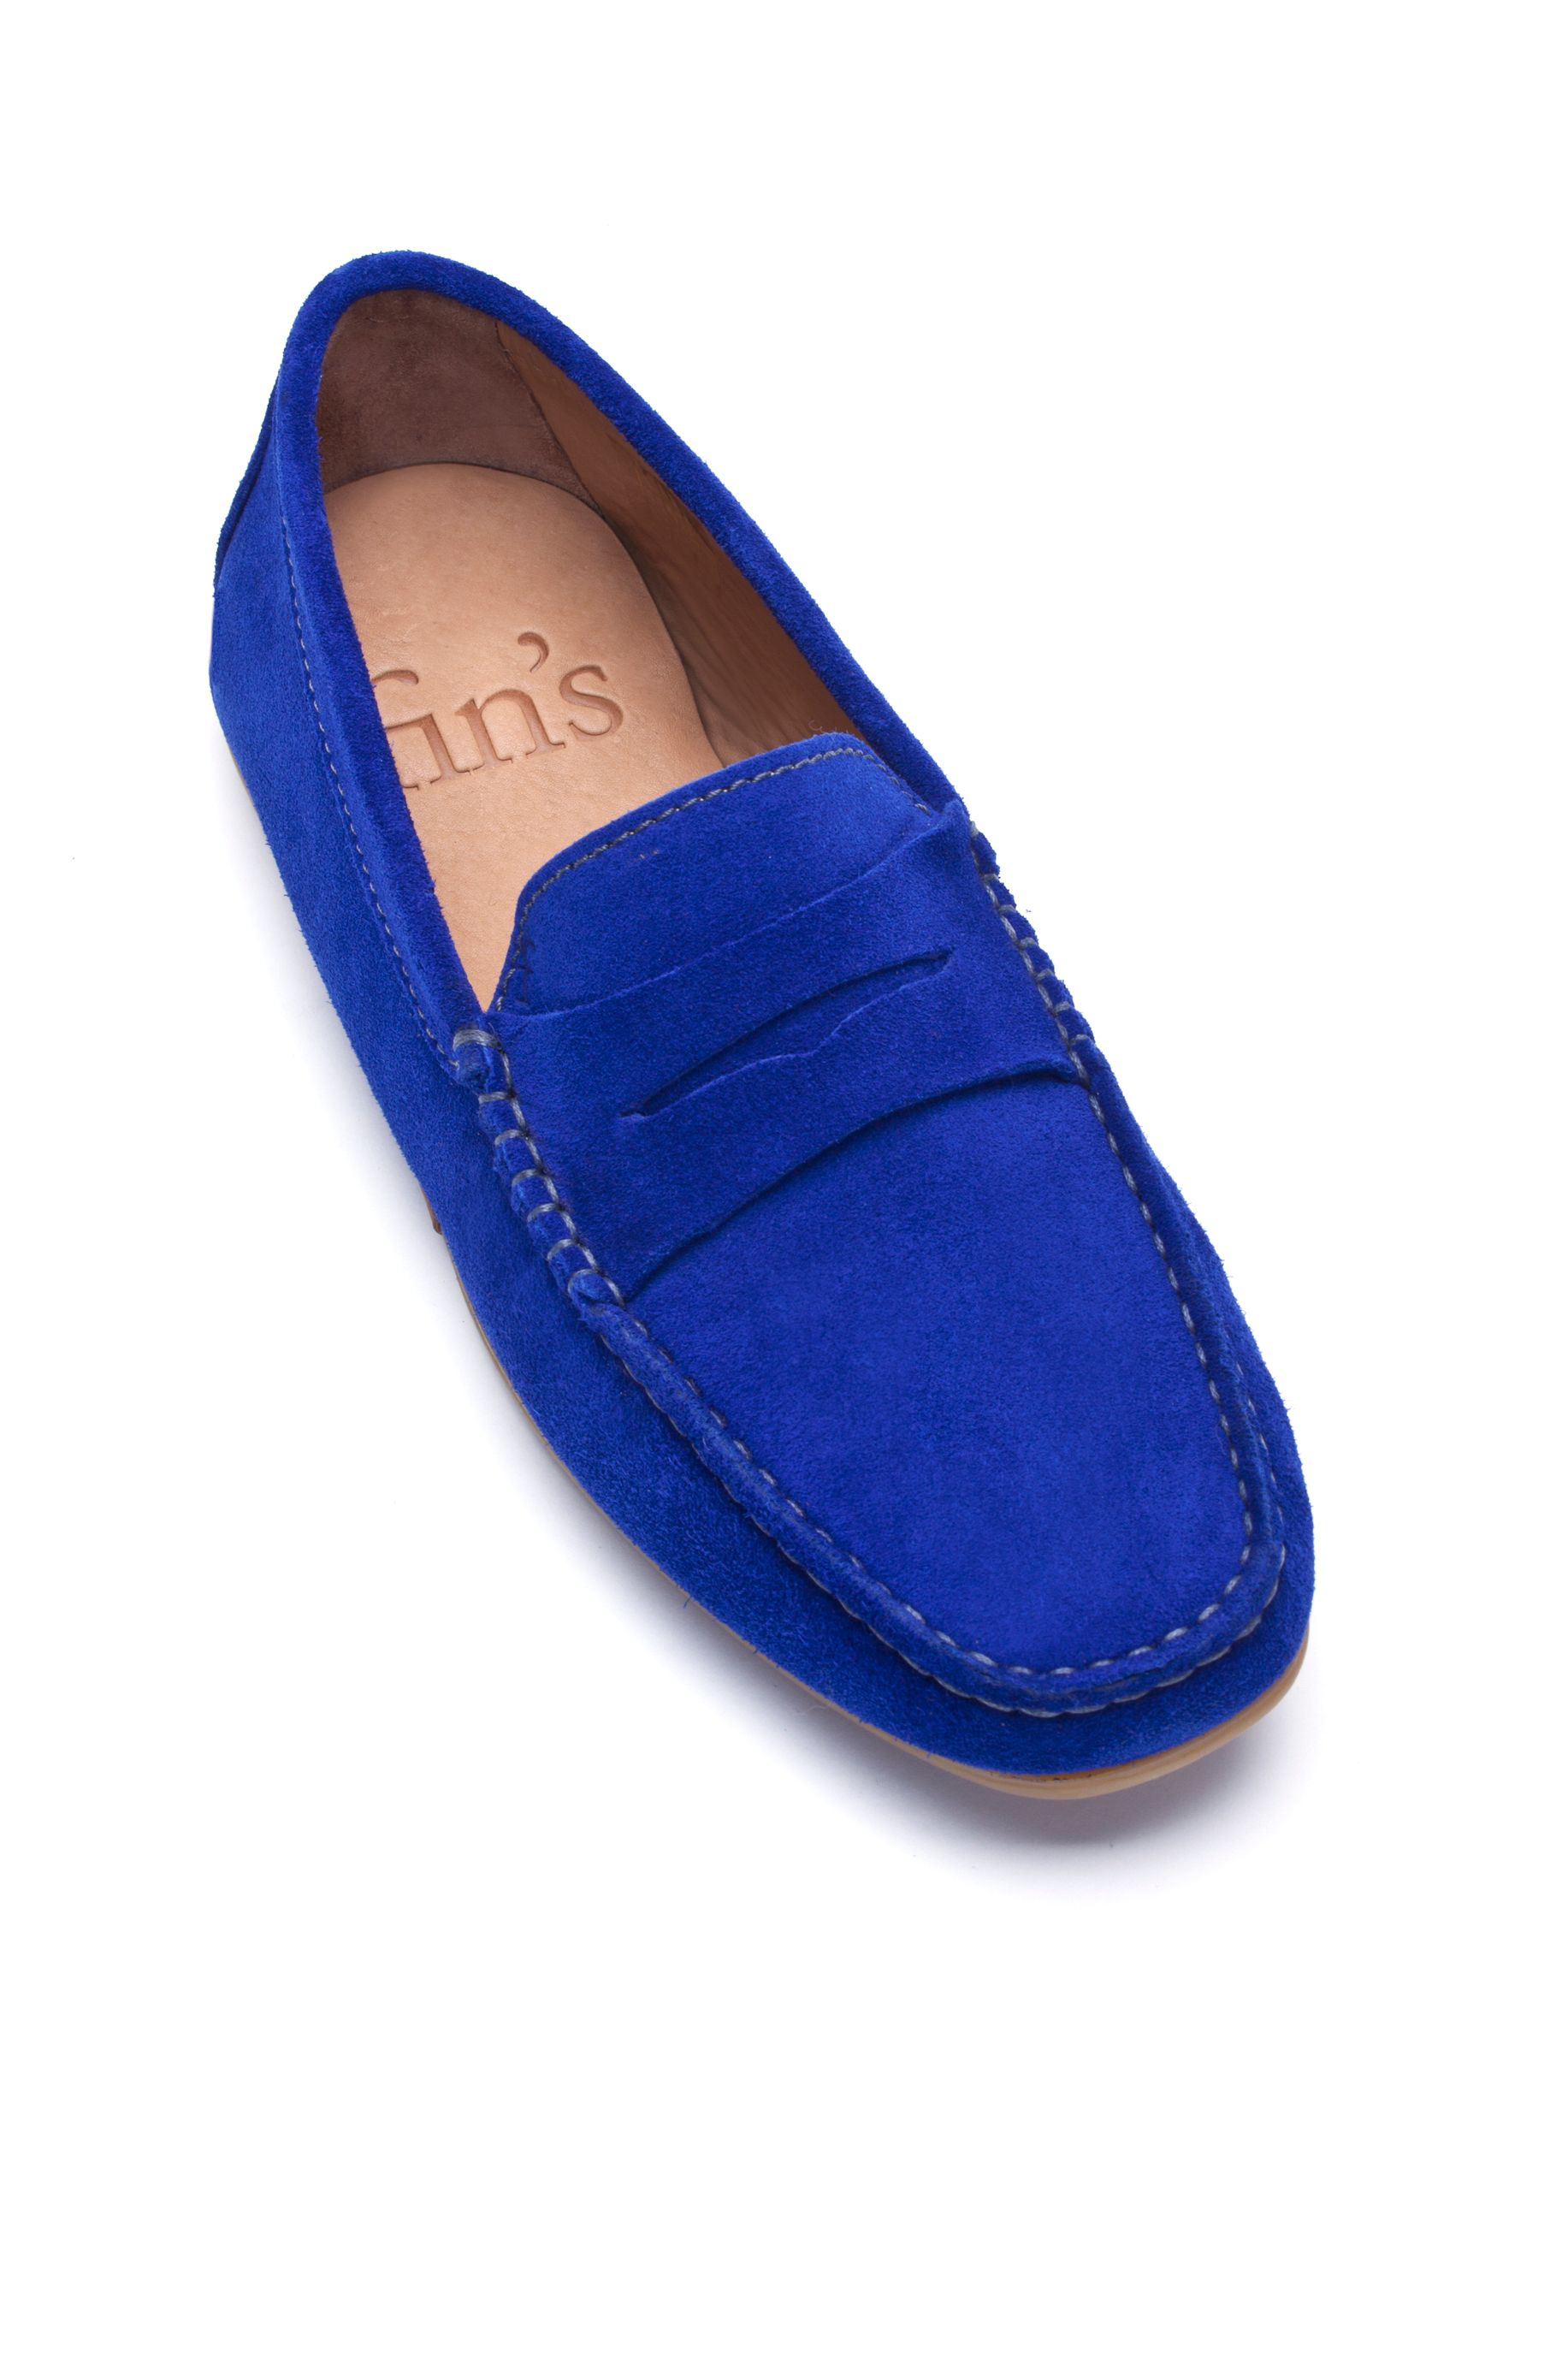 Bell Driver blue bobble sole moccasins